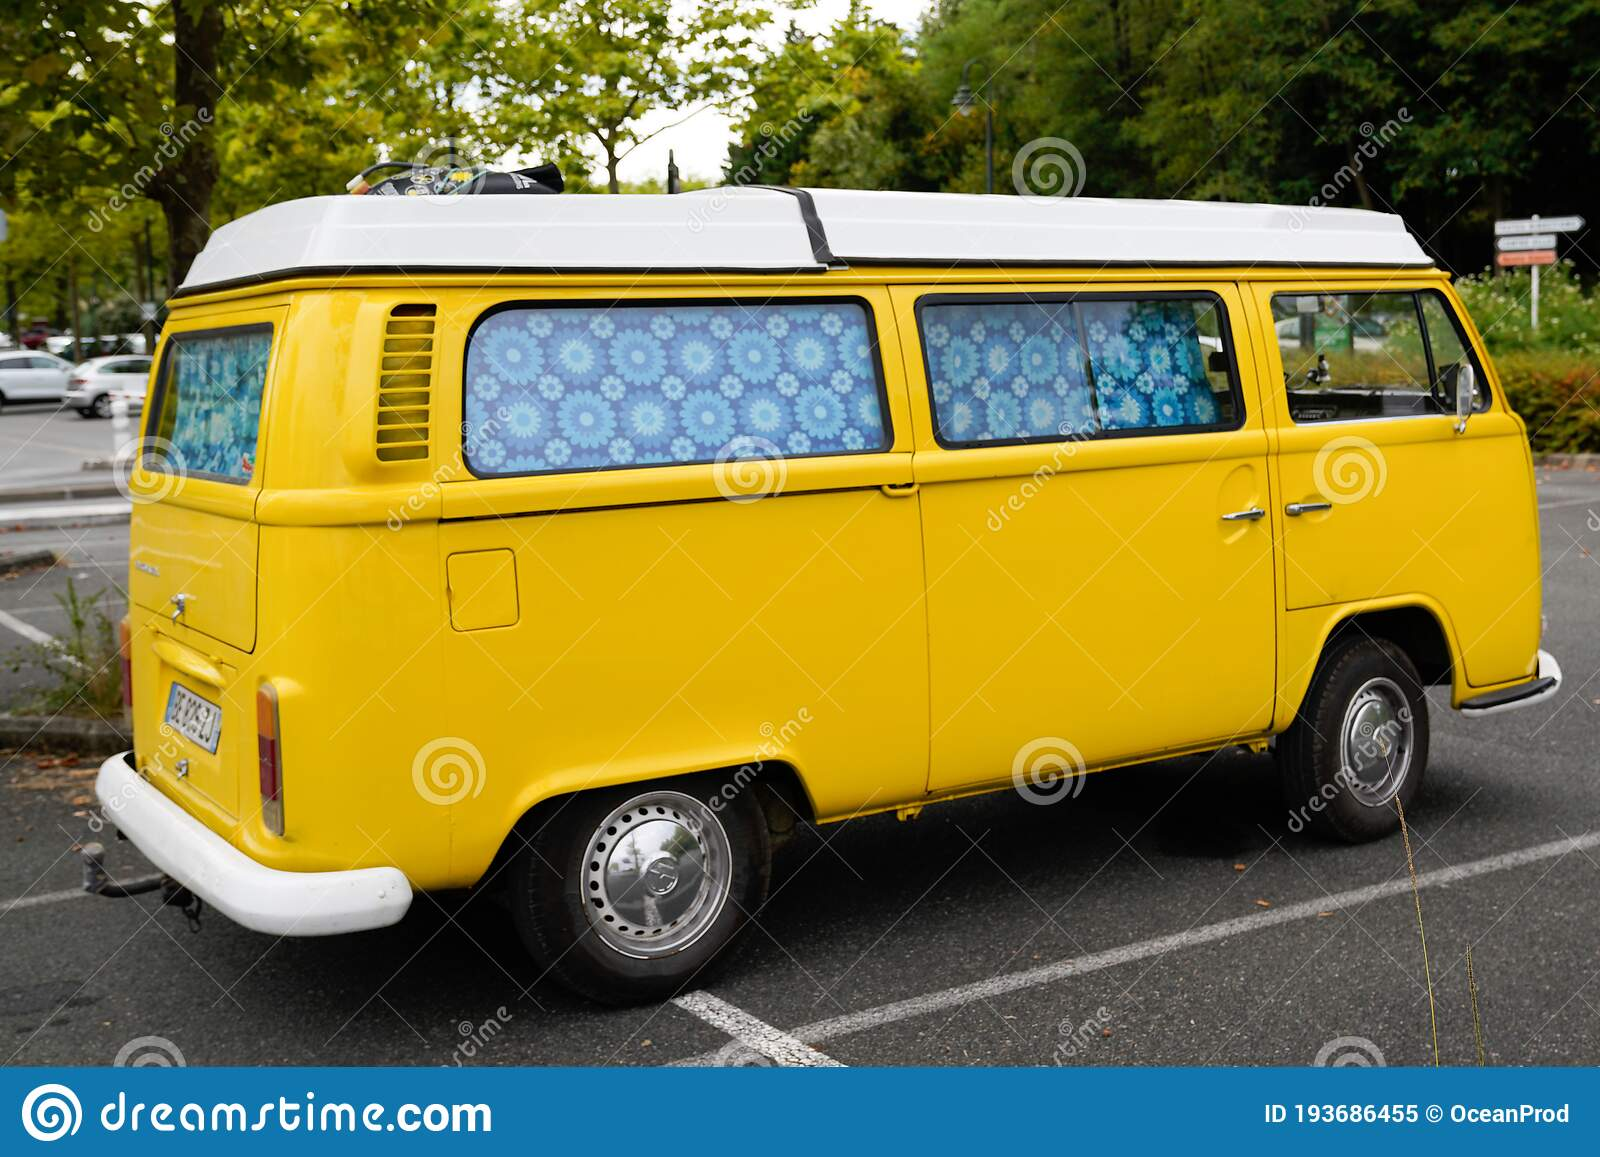 2 029 Bus Volkswagen Photos Free Royalty Free Stock Photos From Dreamstime